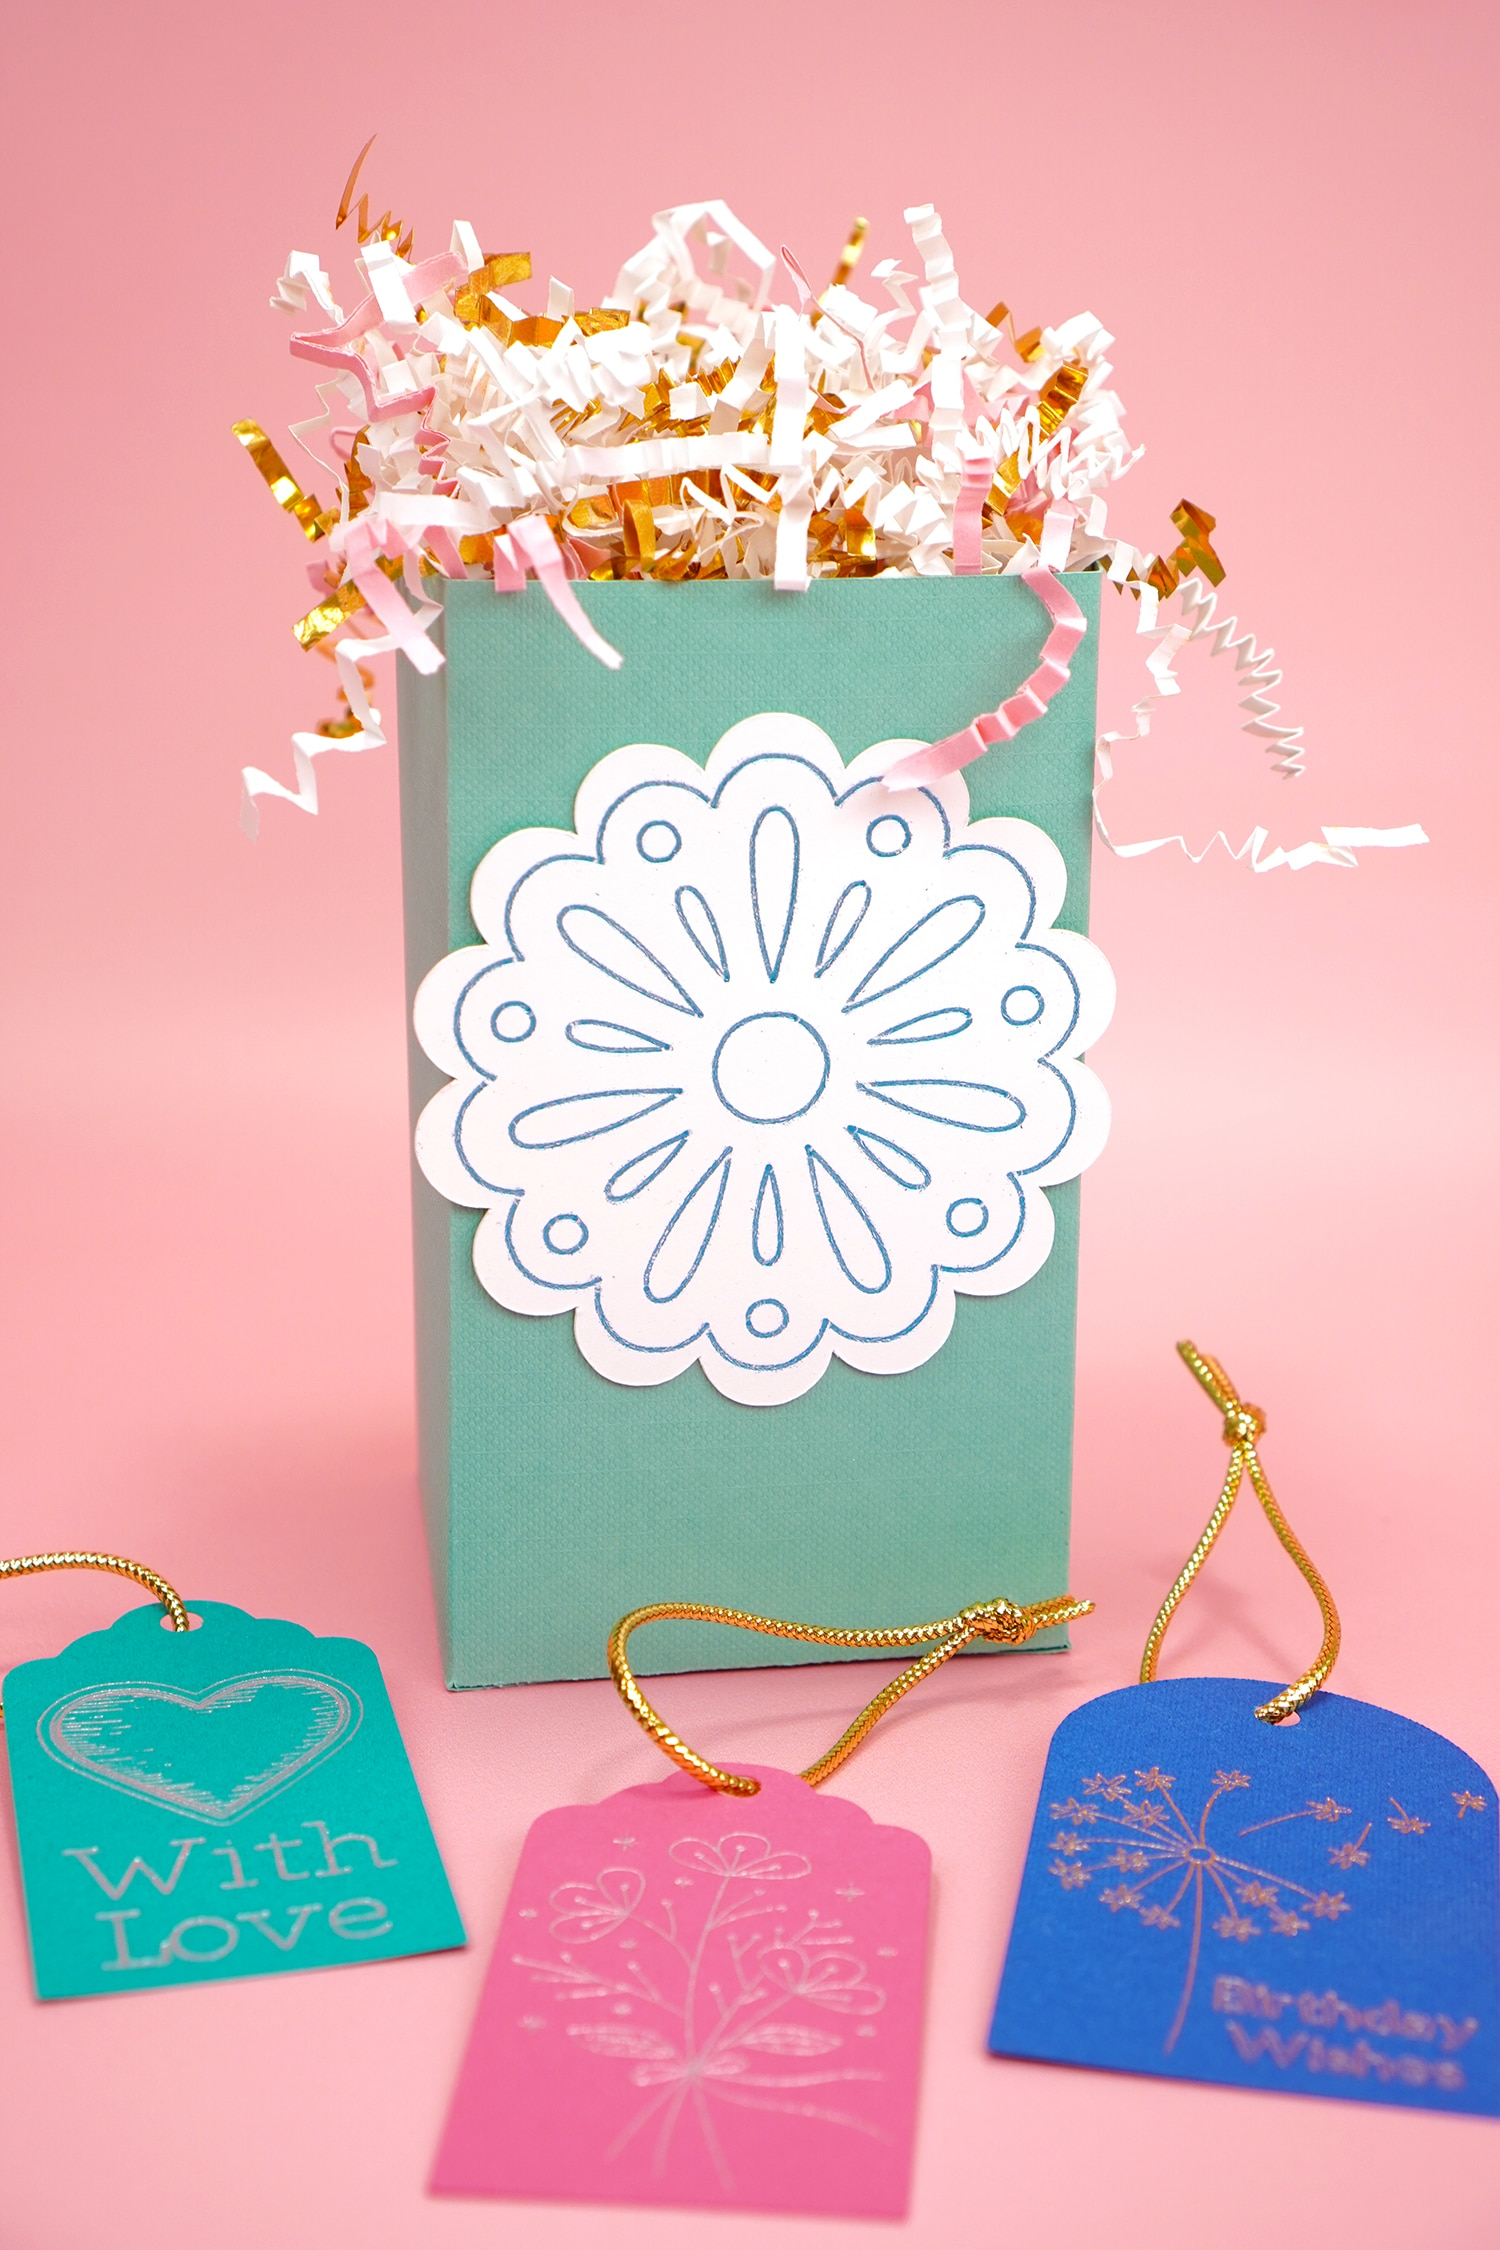 Mint green gift box with foil flower design and foil gift tags on pink background